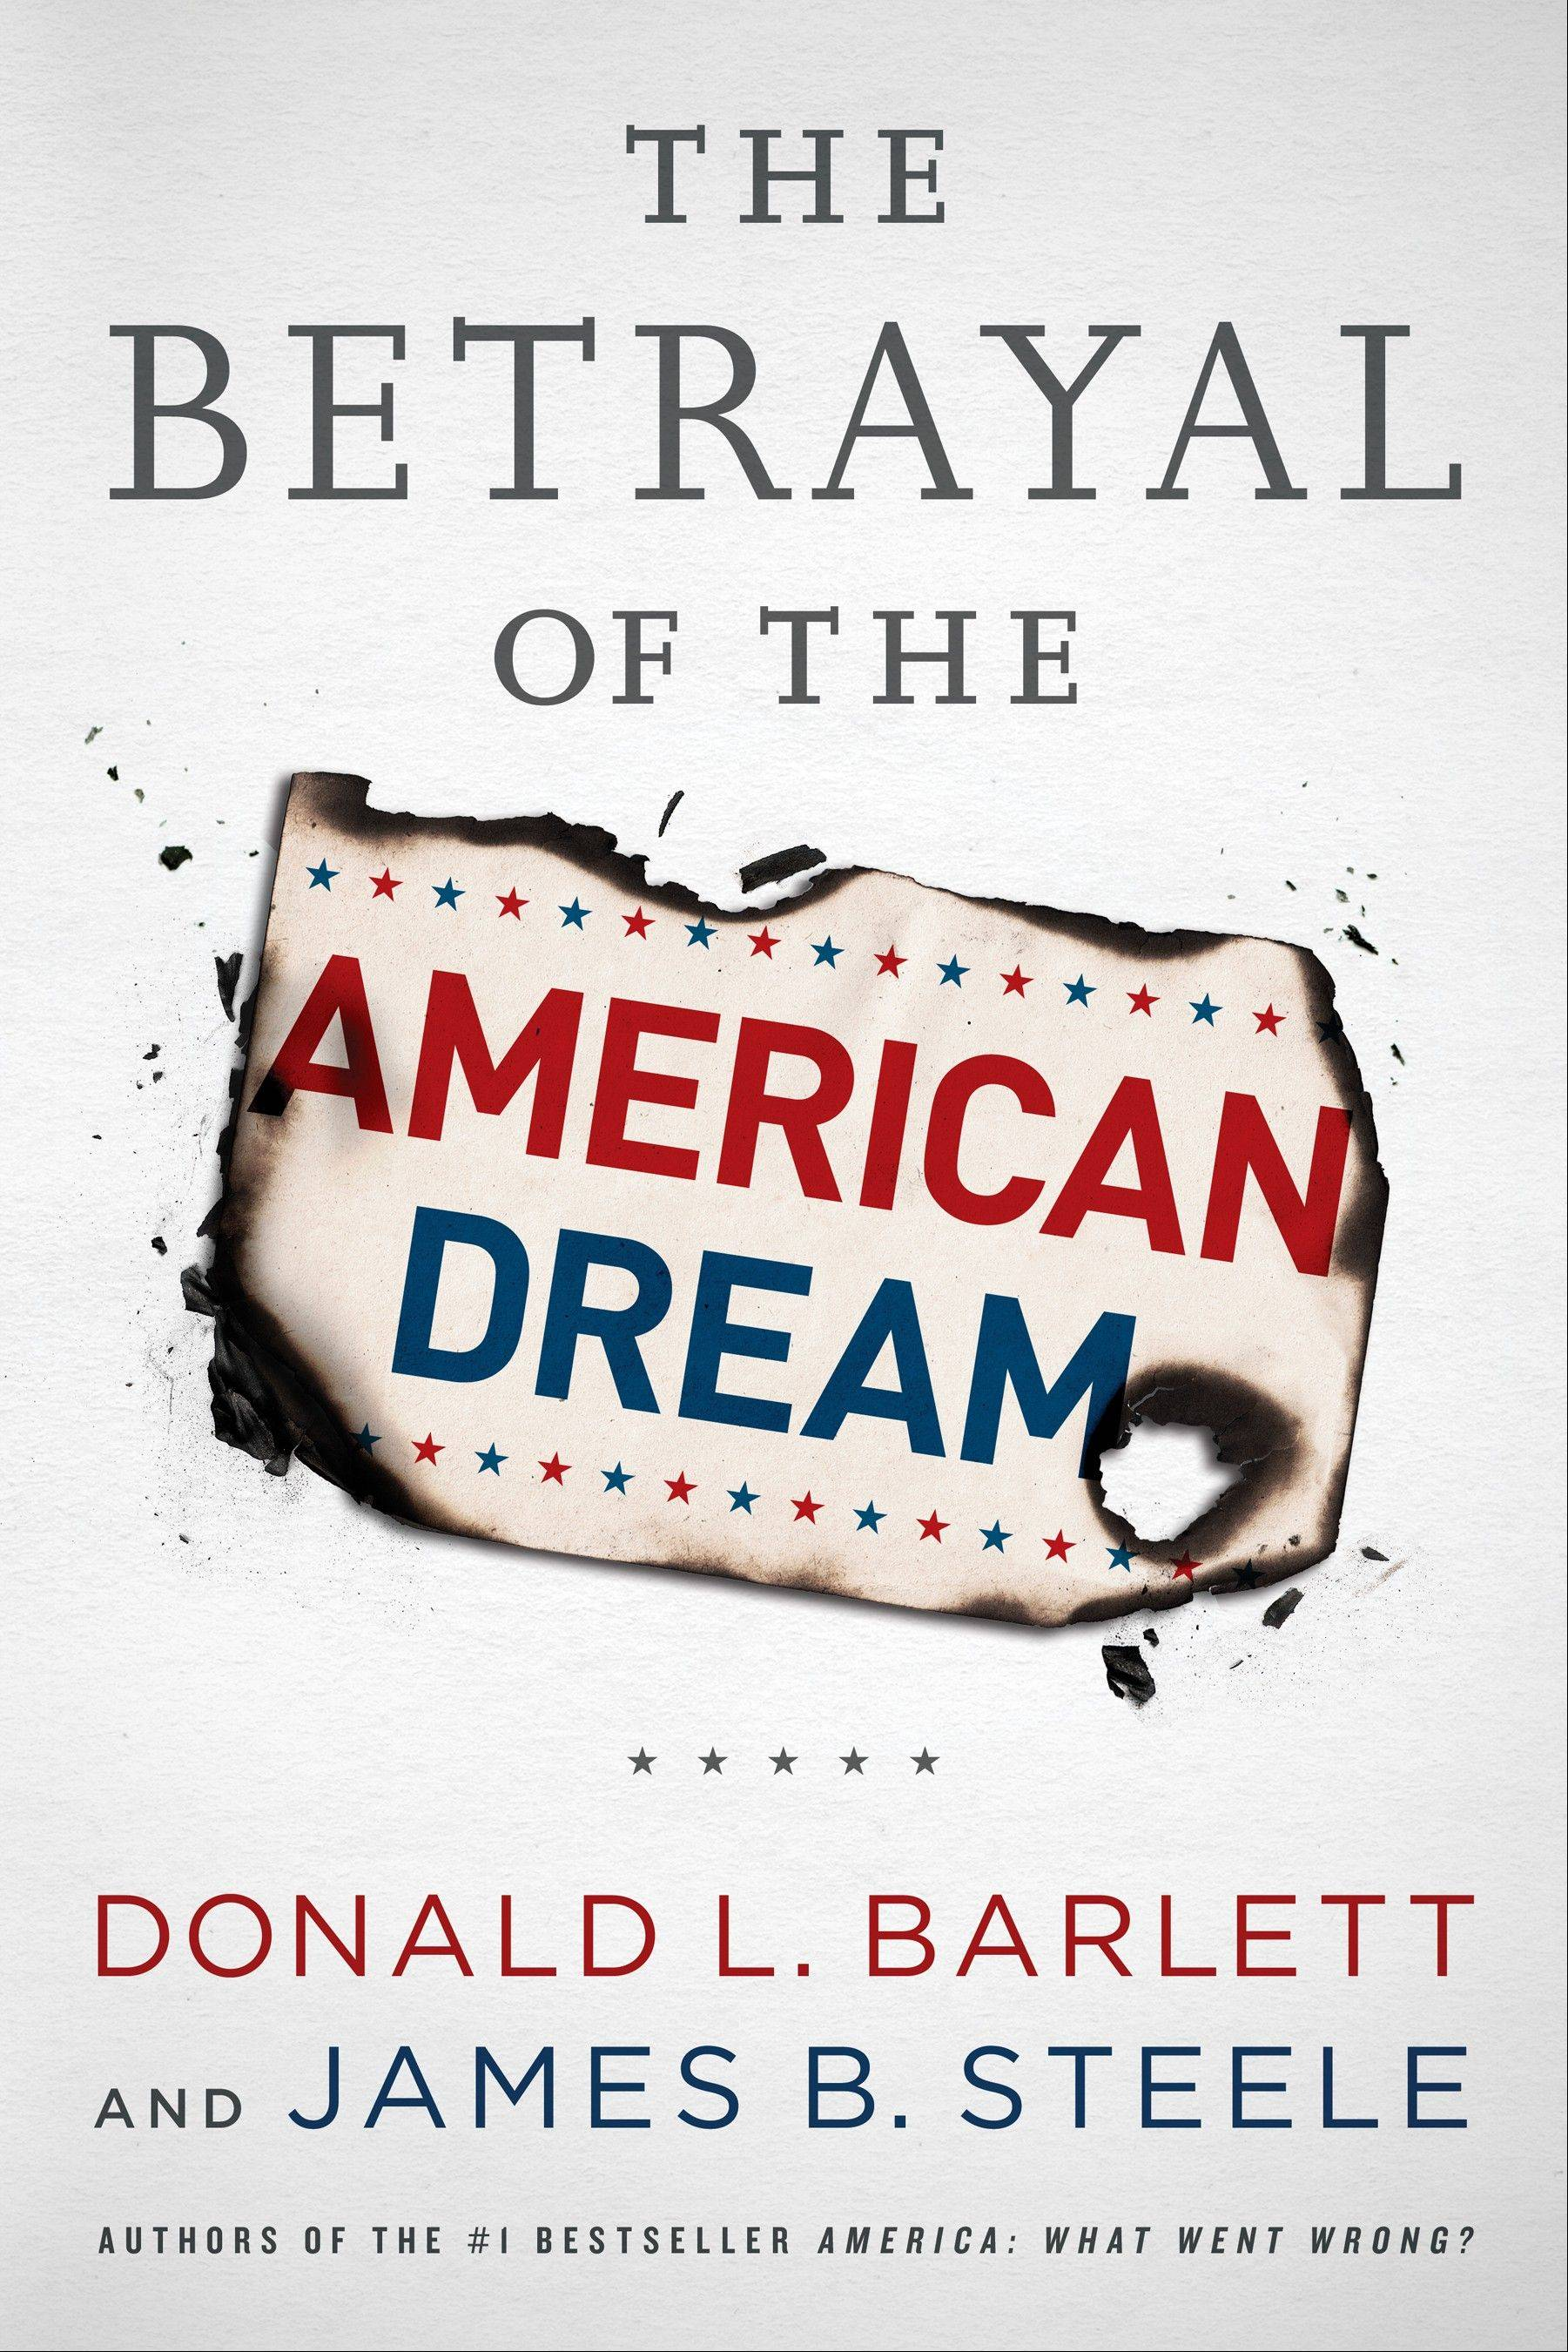 """The Betrayal of the American Dream"" by Donald L. Barlett and James B. Steele"